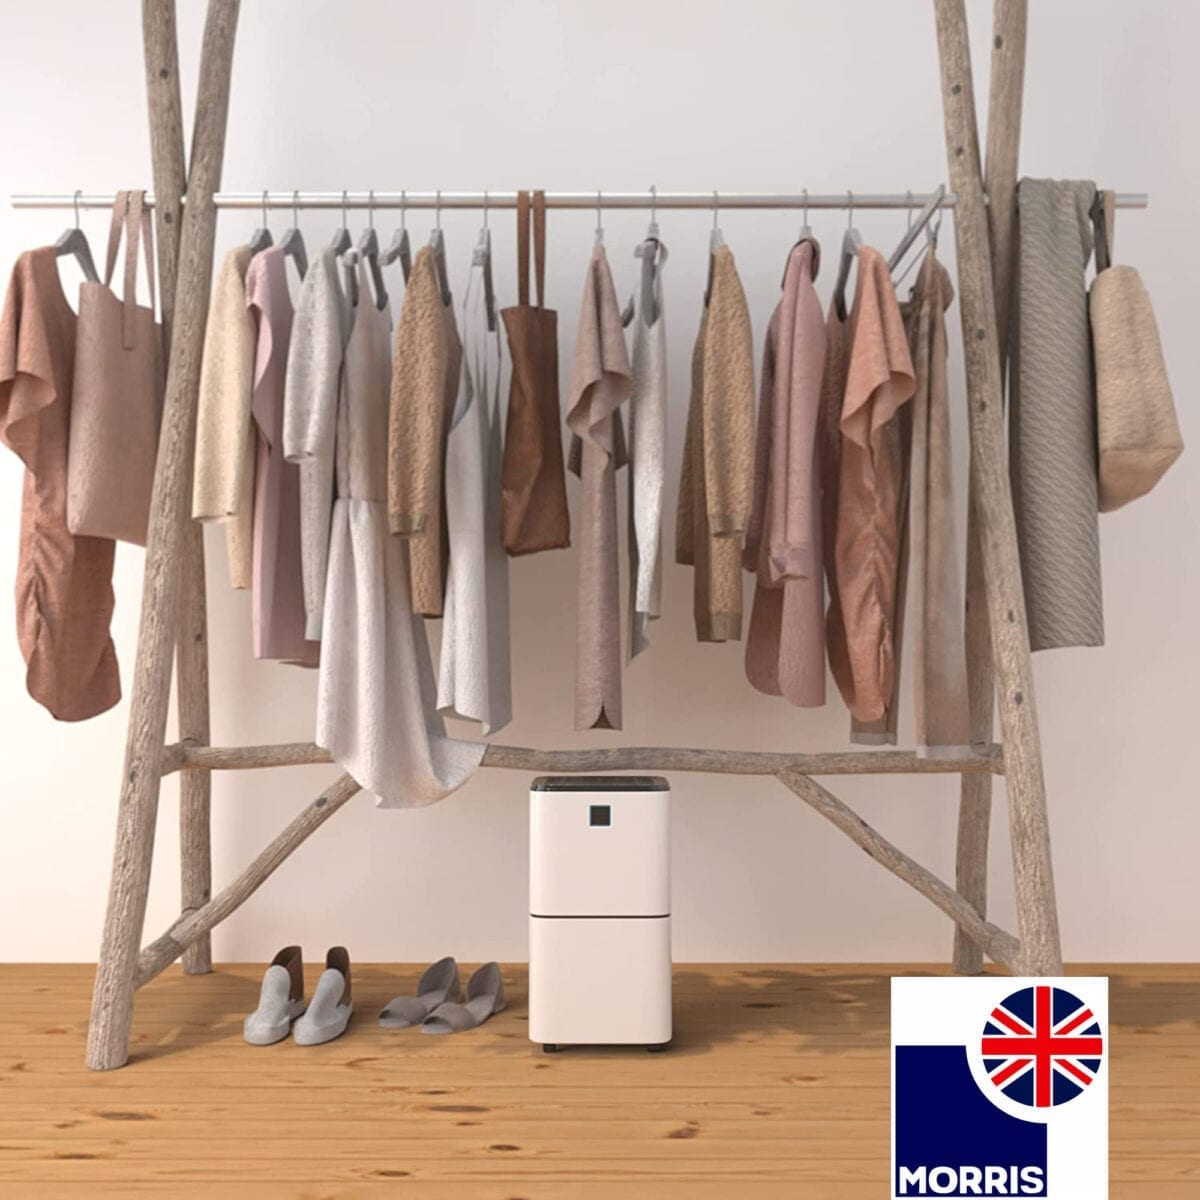 dehumidifier for drying your clothes